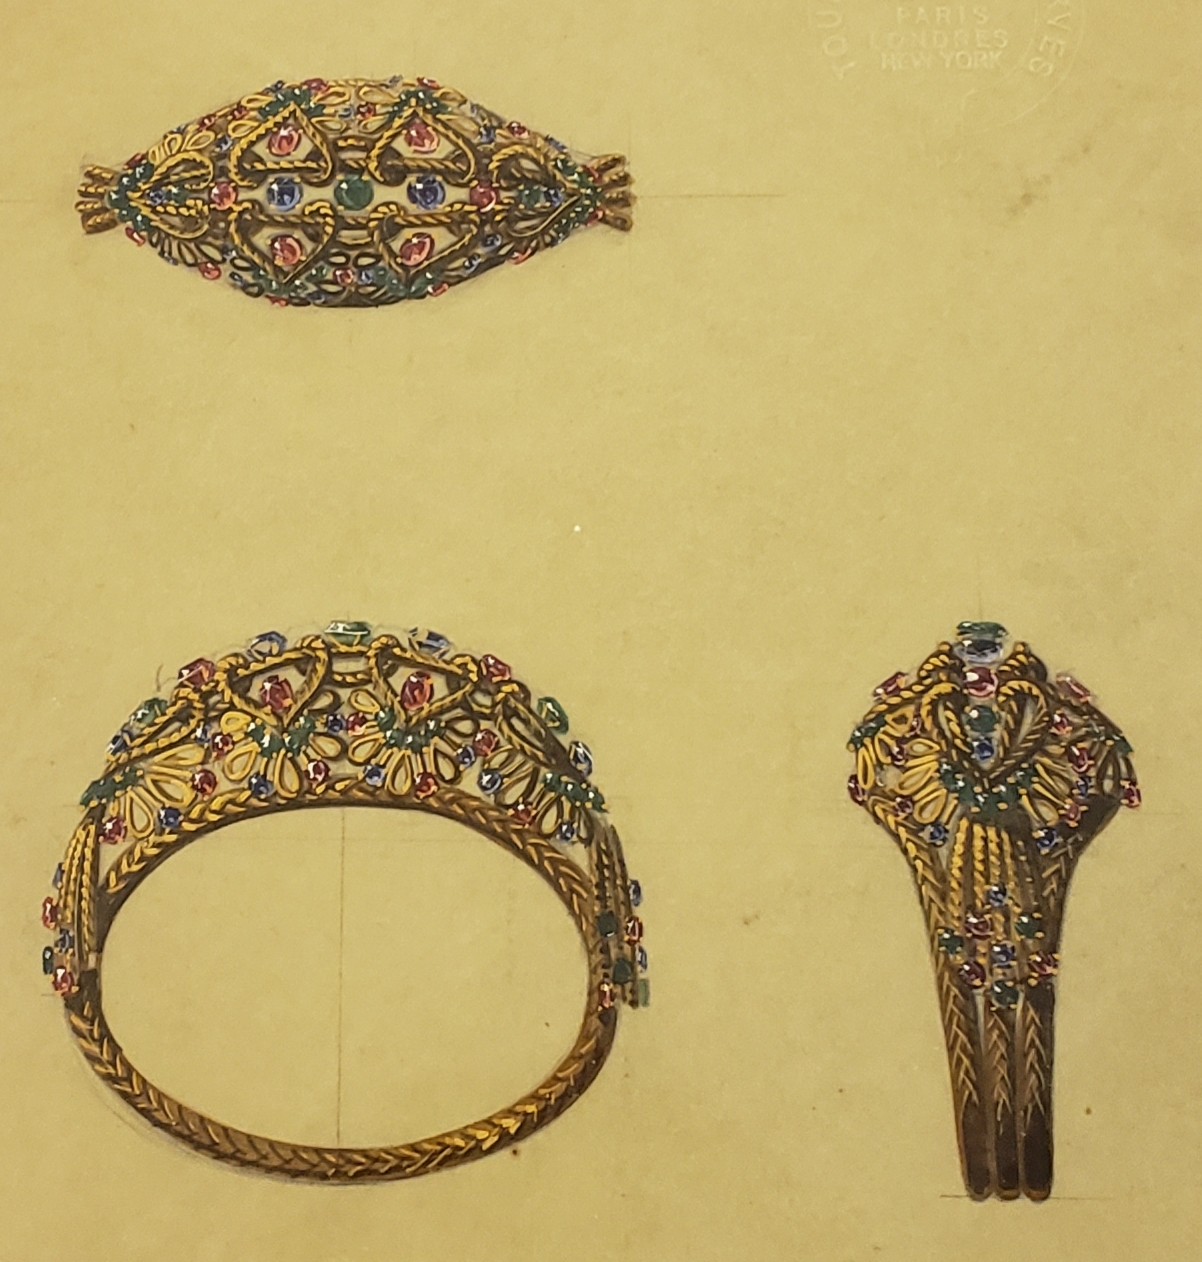 Gold and colored stone cuff bracelet, c. 1950